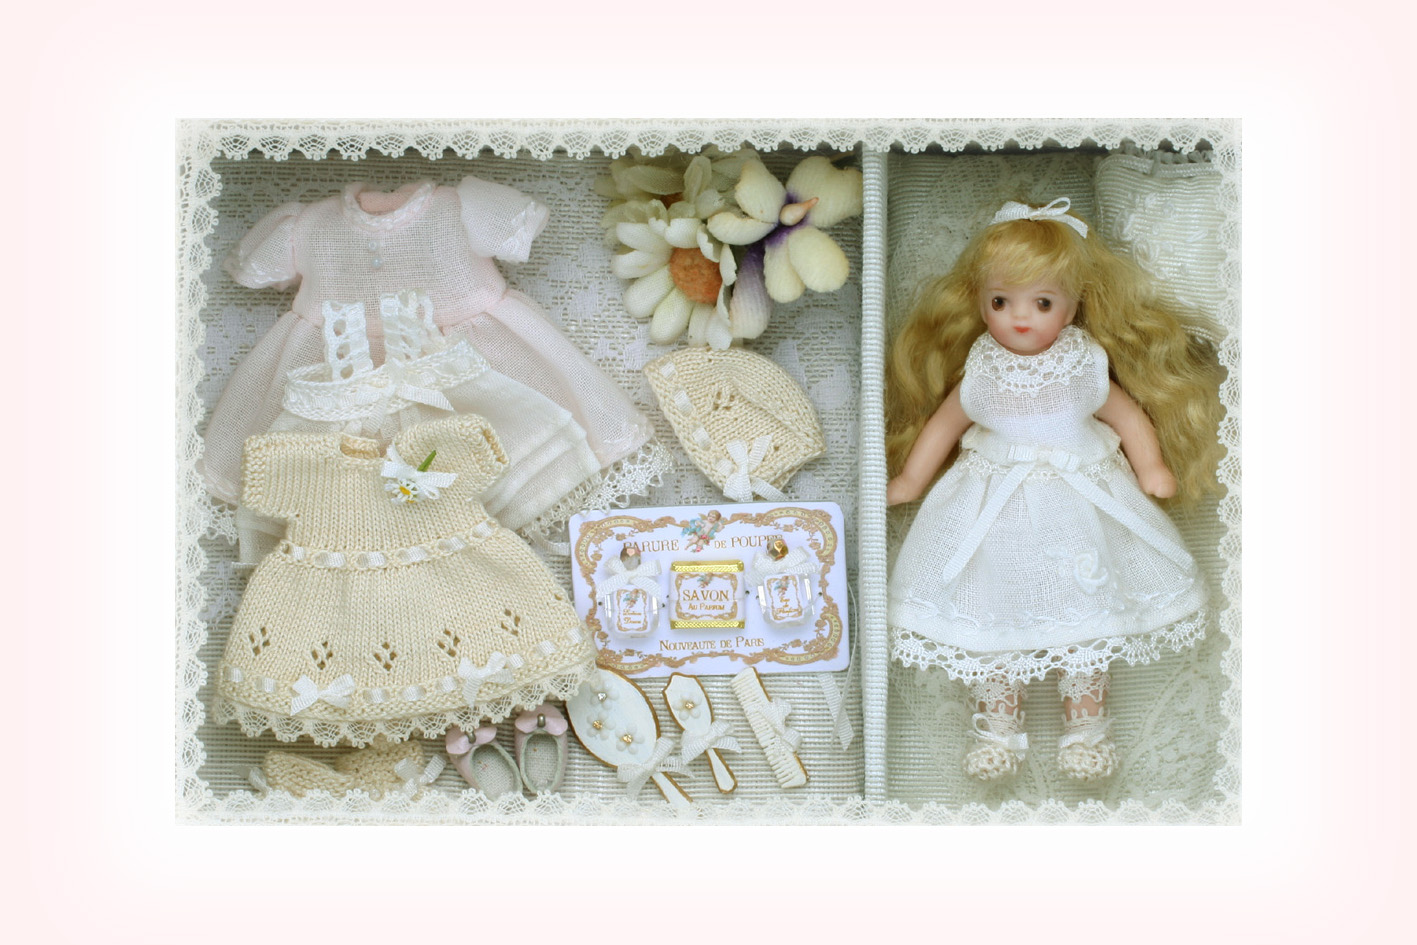 Marcy's Dollies Weblog